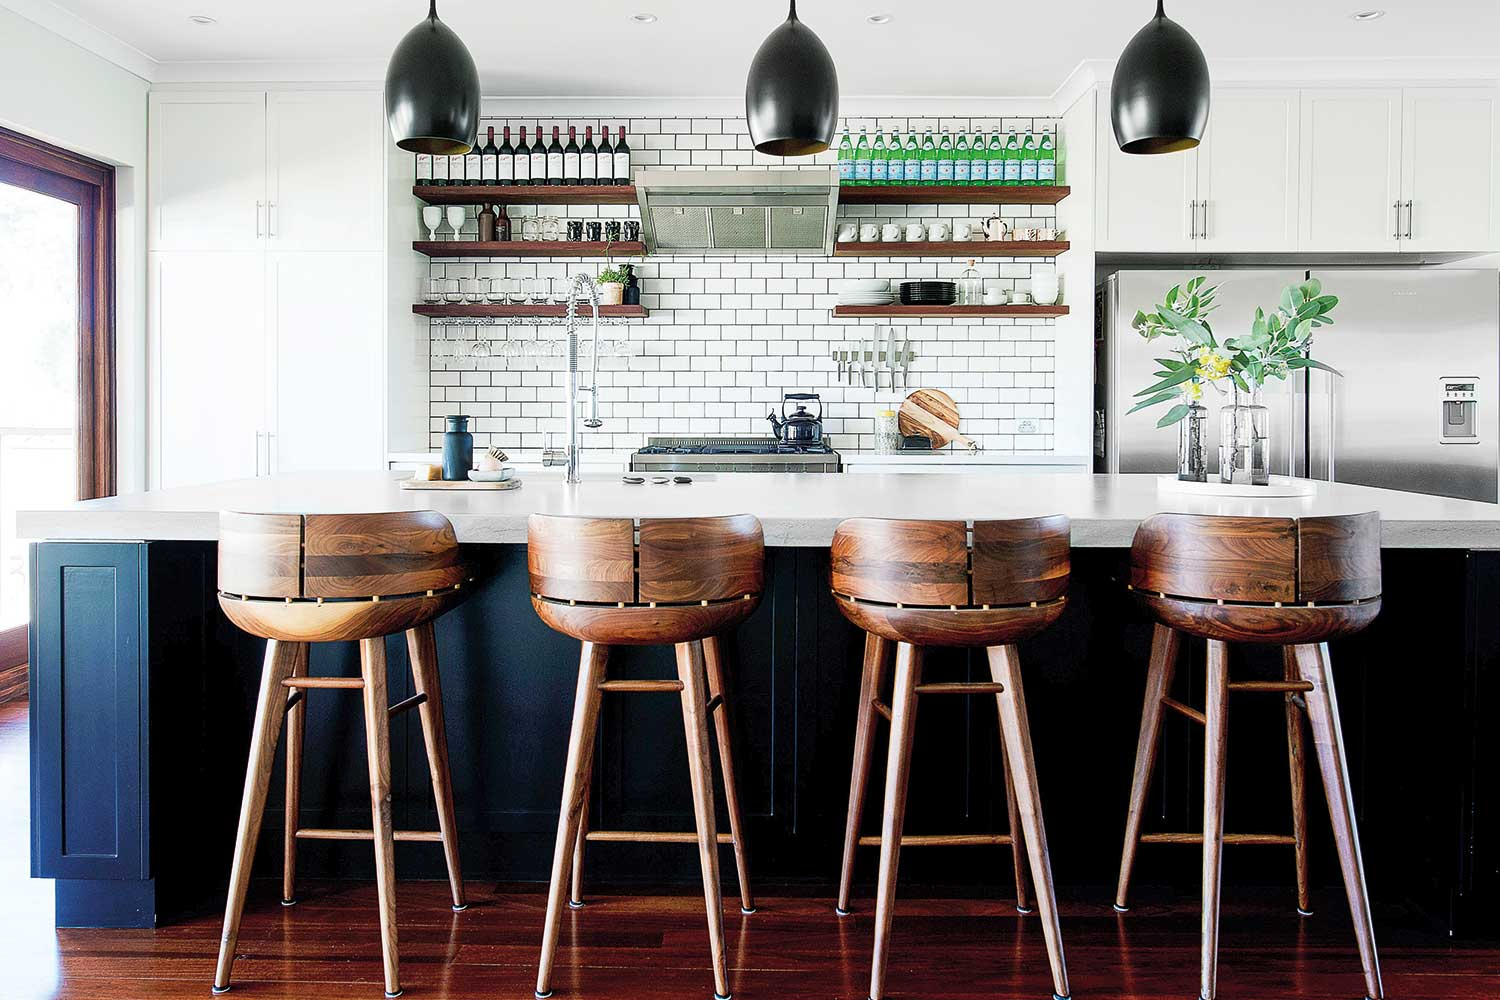 12 best-selling bar stools to elevate your kitchen | Home ...